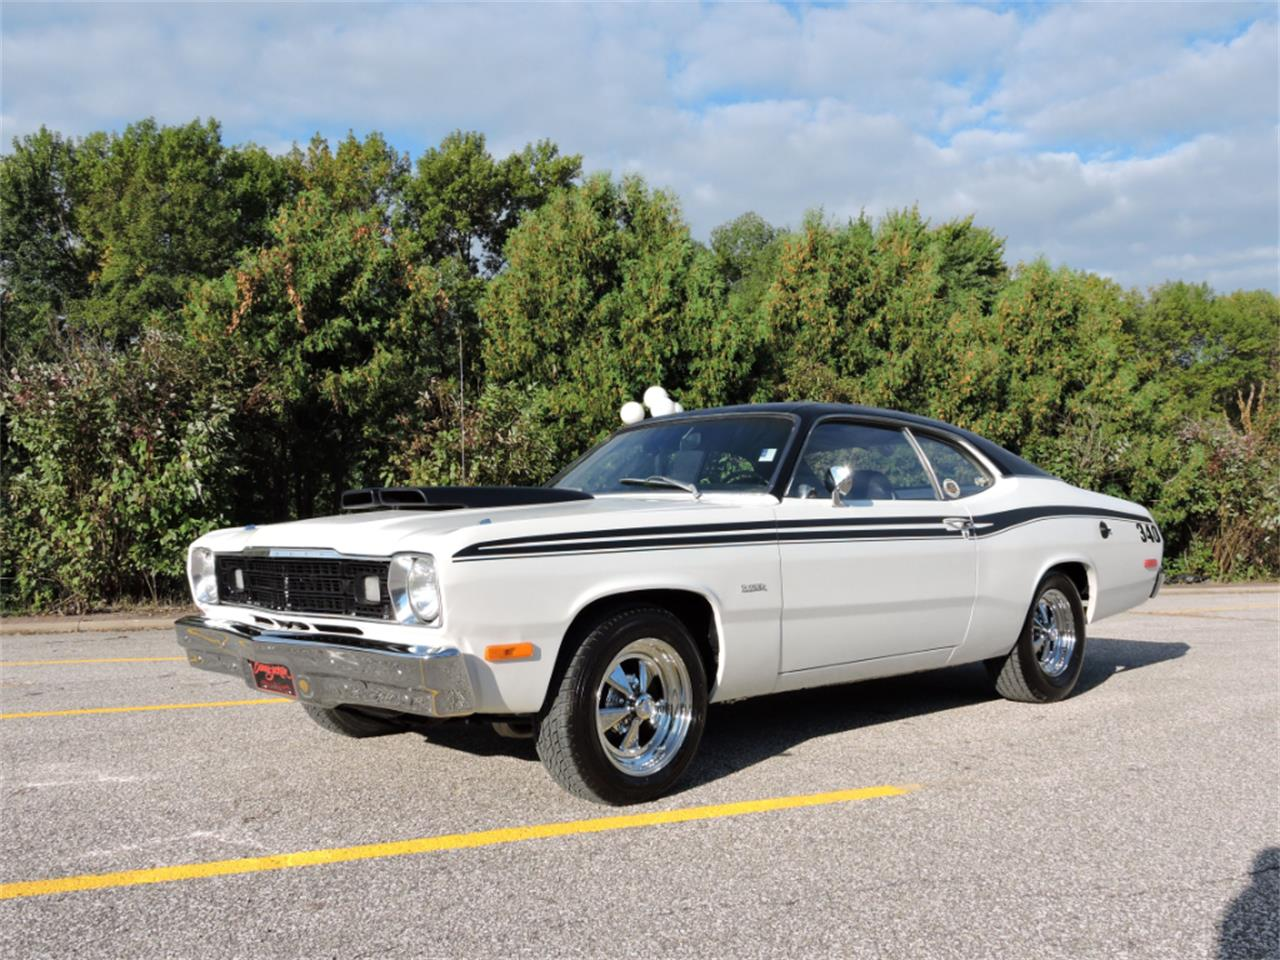 1973 Plymouth Duster for sale in Greene, IA – photo 47